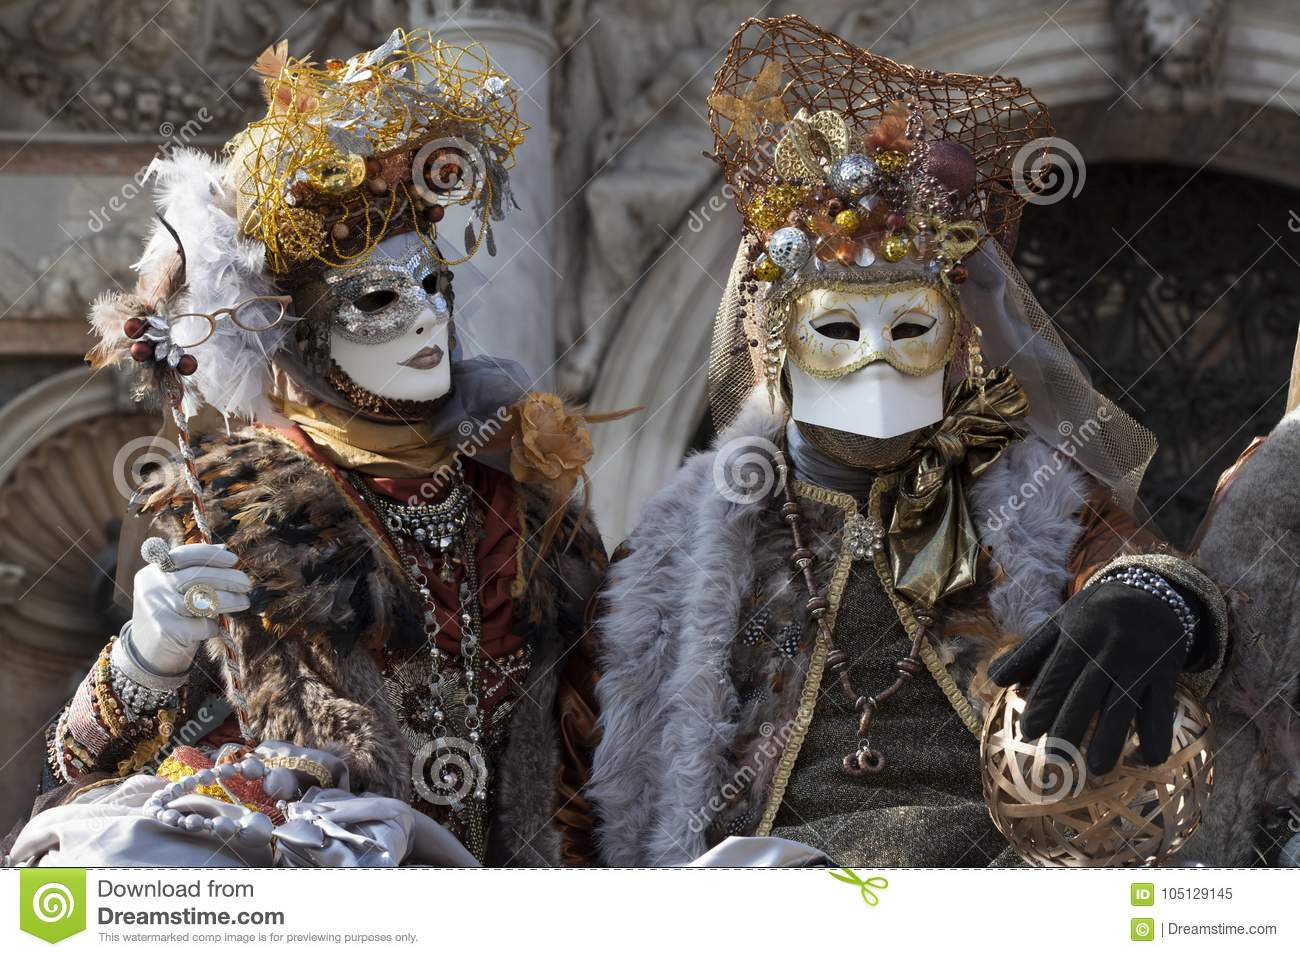 Venice Carnival Figures In A Colorful Gold And Brown